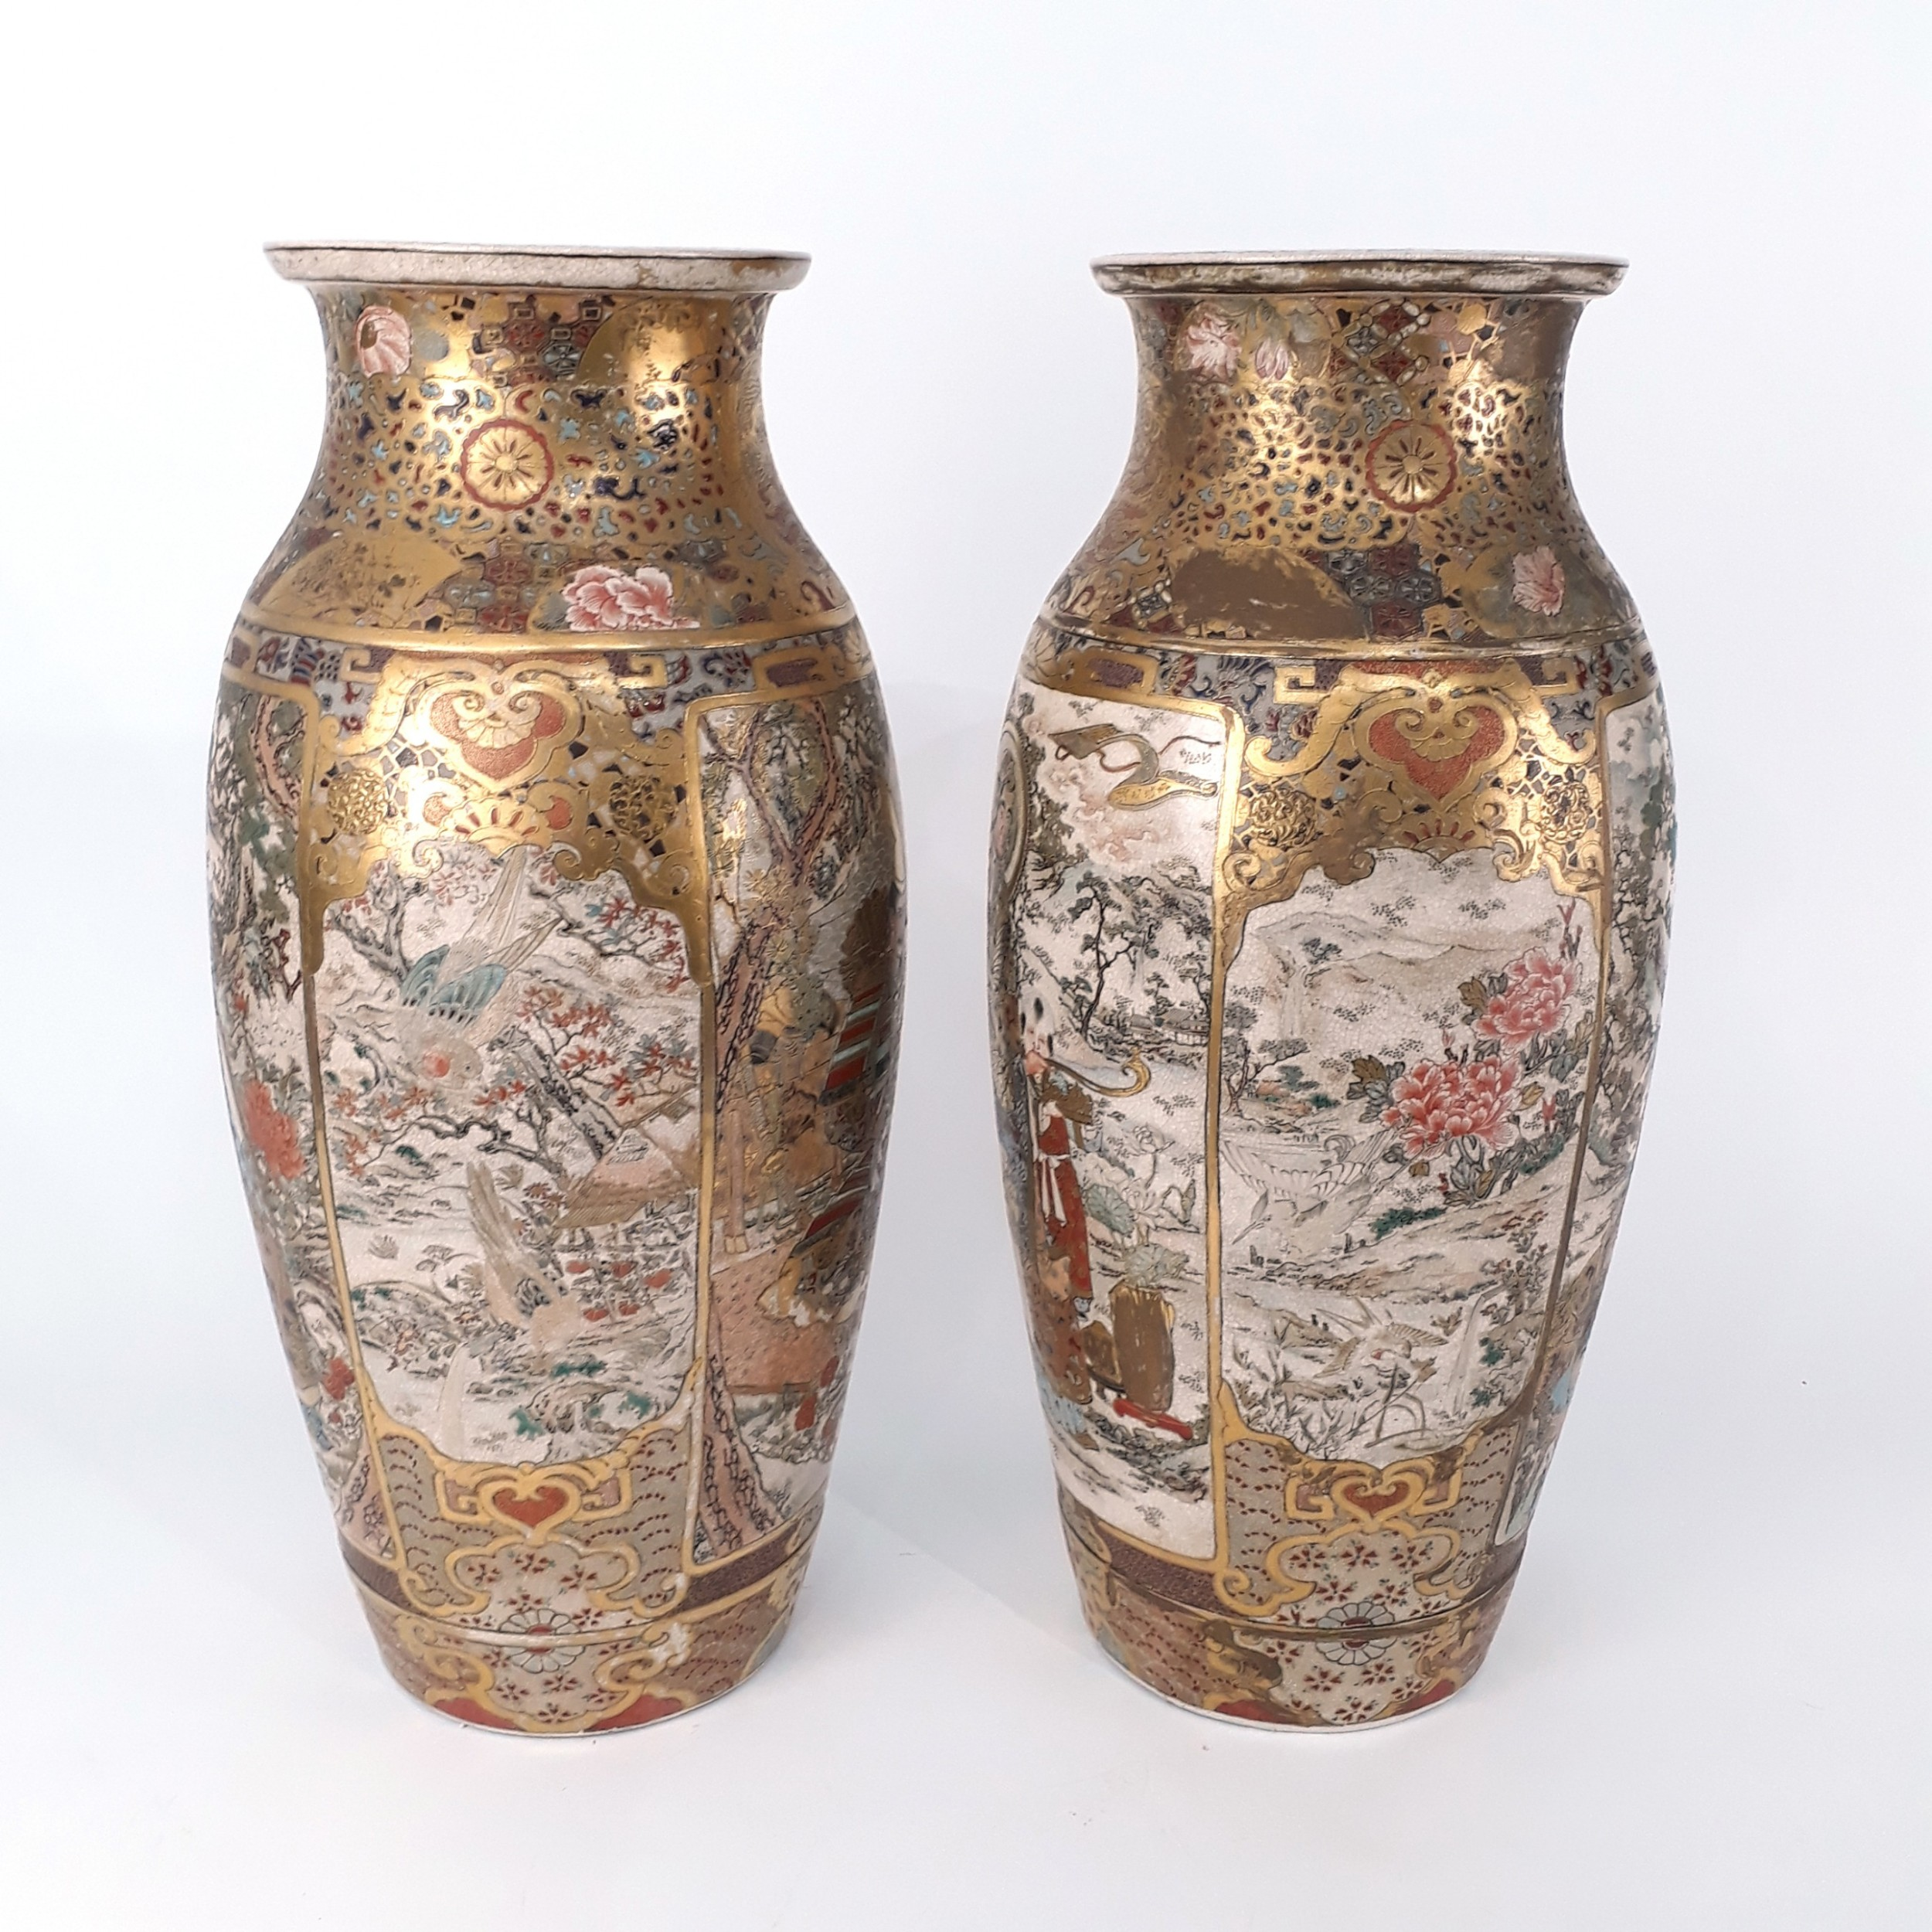 a pair of japanese satsuma vases with decoration of samurai and deities